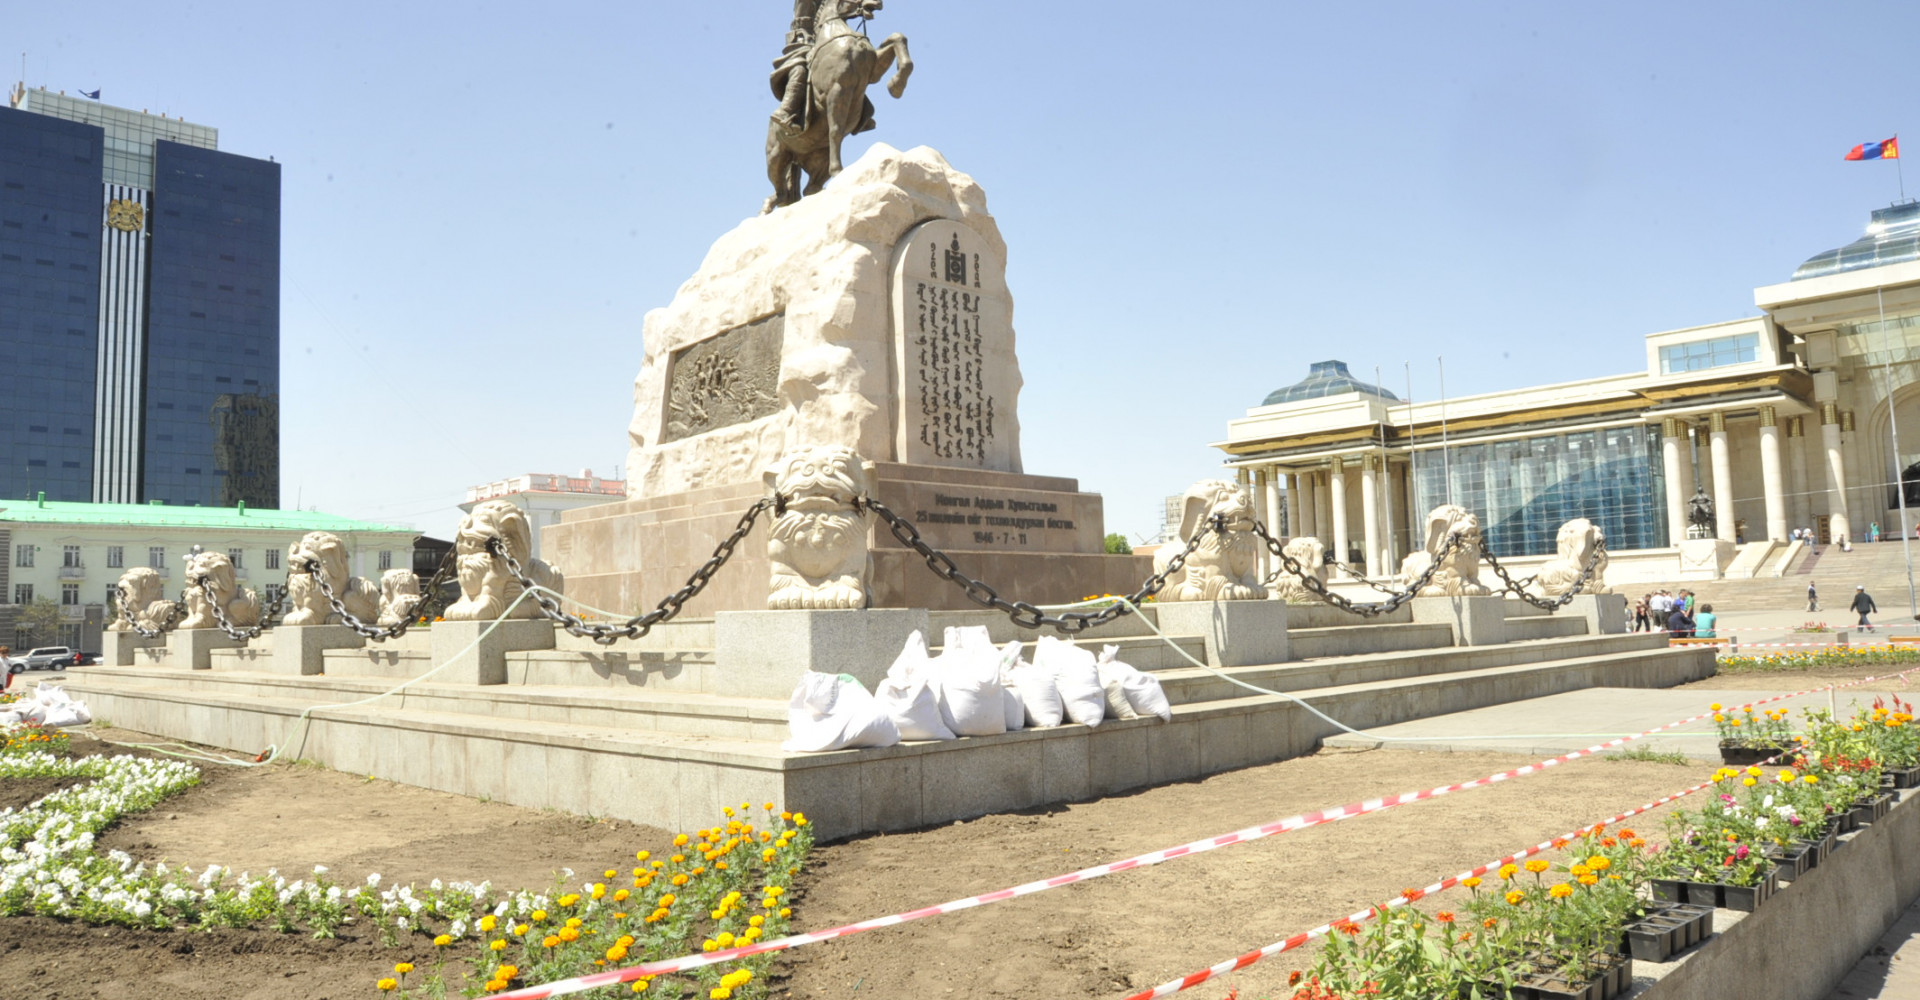 DAMDINY SUKHBAATAR EQUESTRIAN STATUE AND MEMORIAL